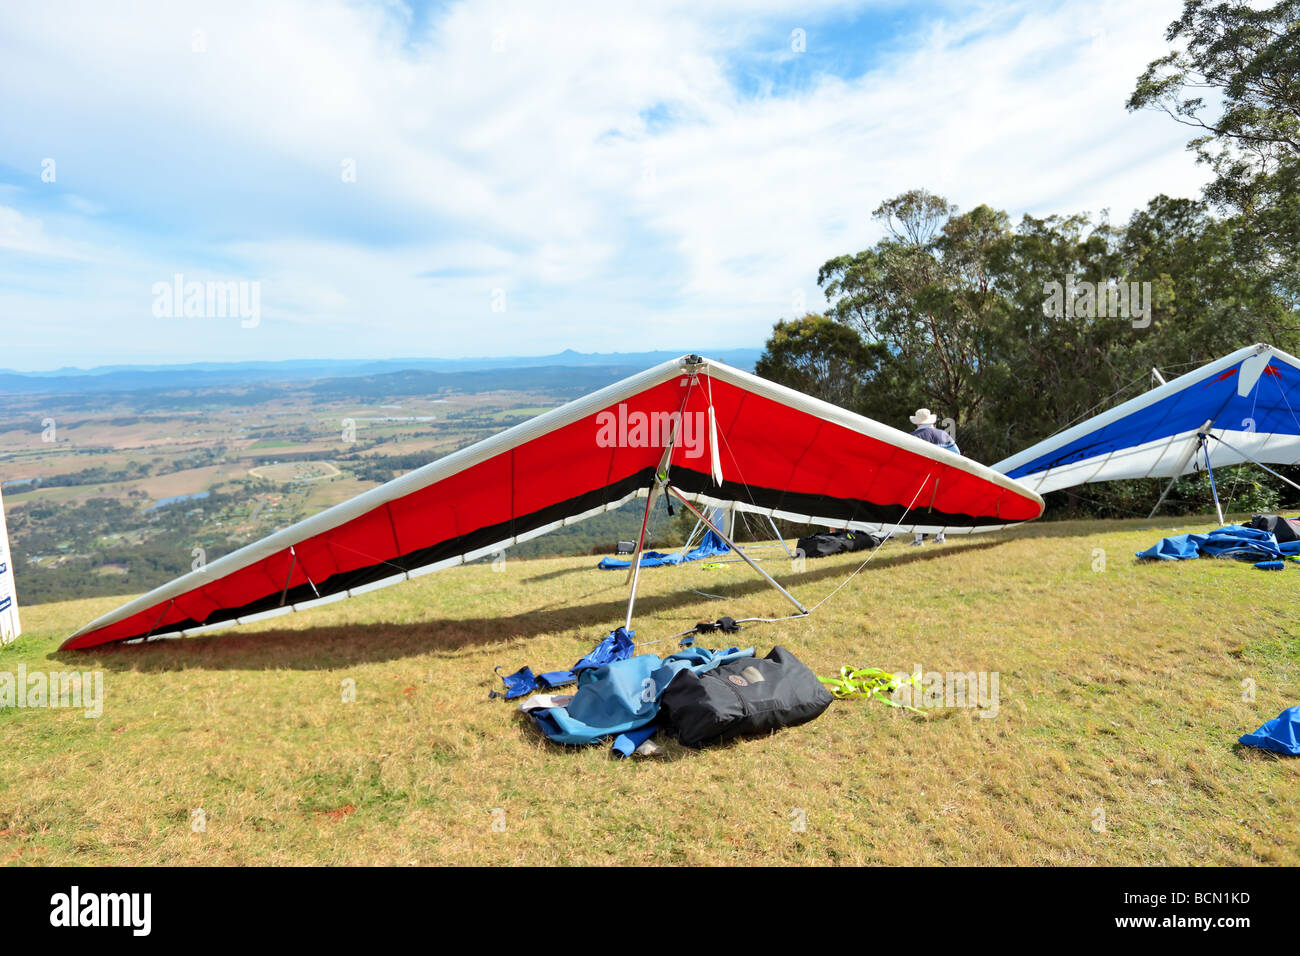 Pilots assembling their hang gliders prior to flight - Stock Image